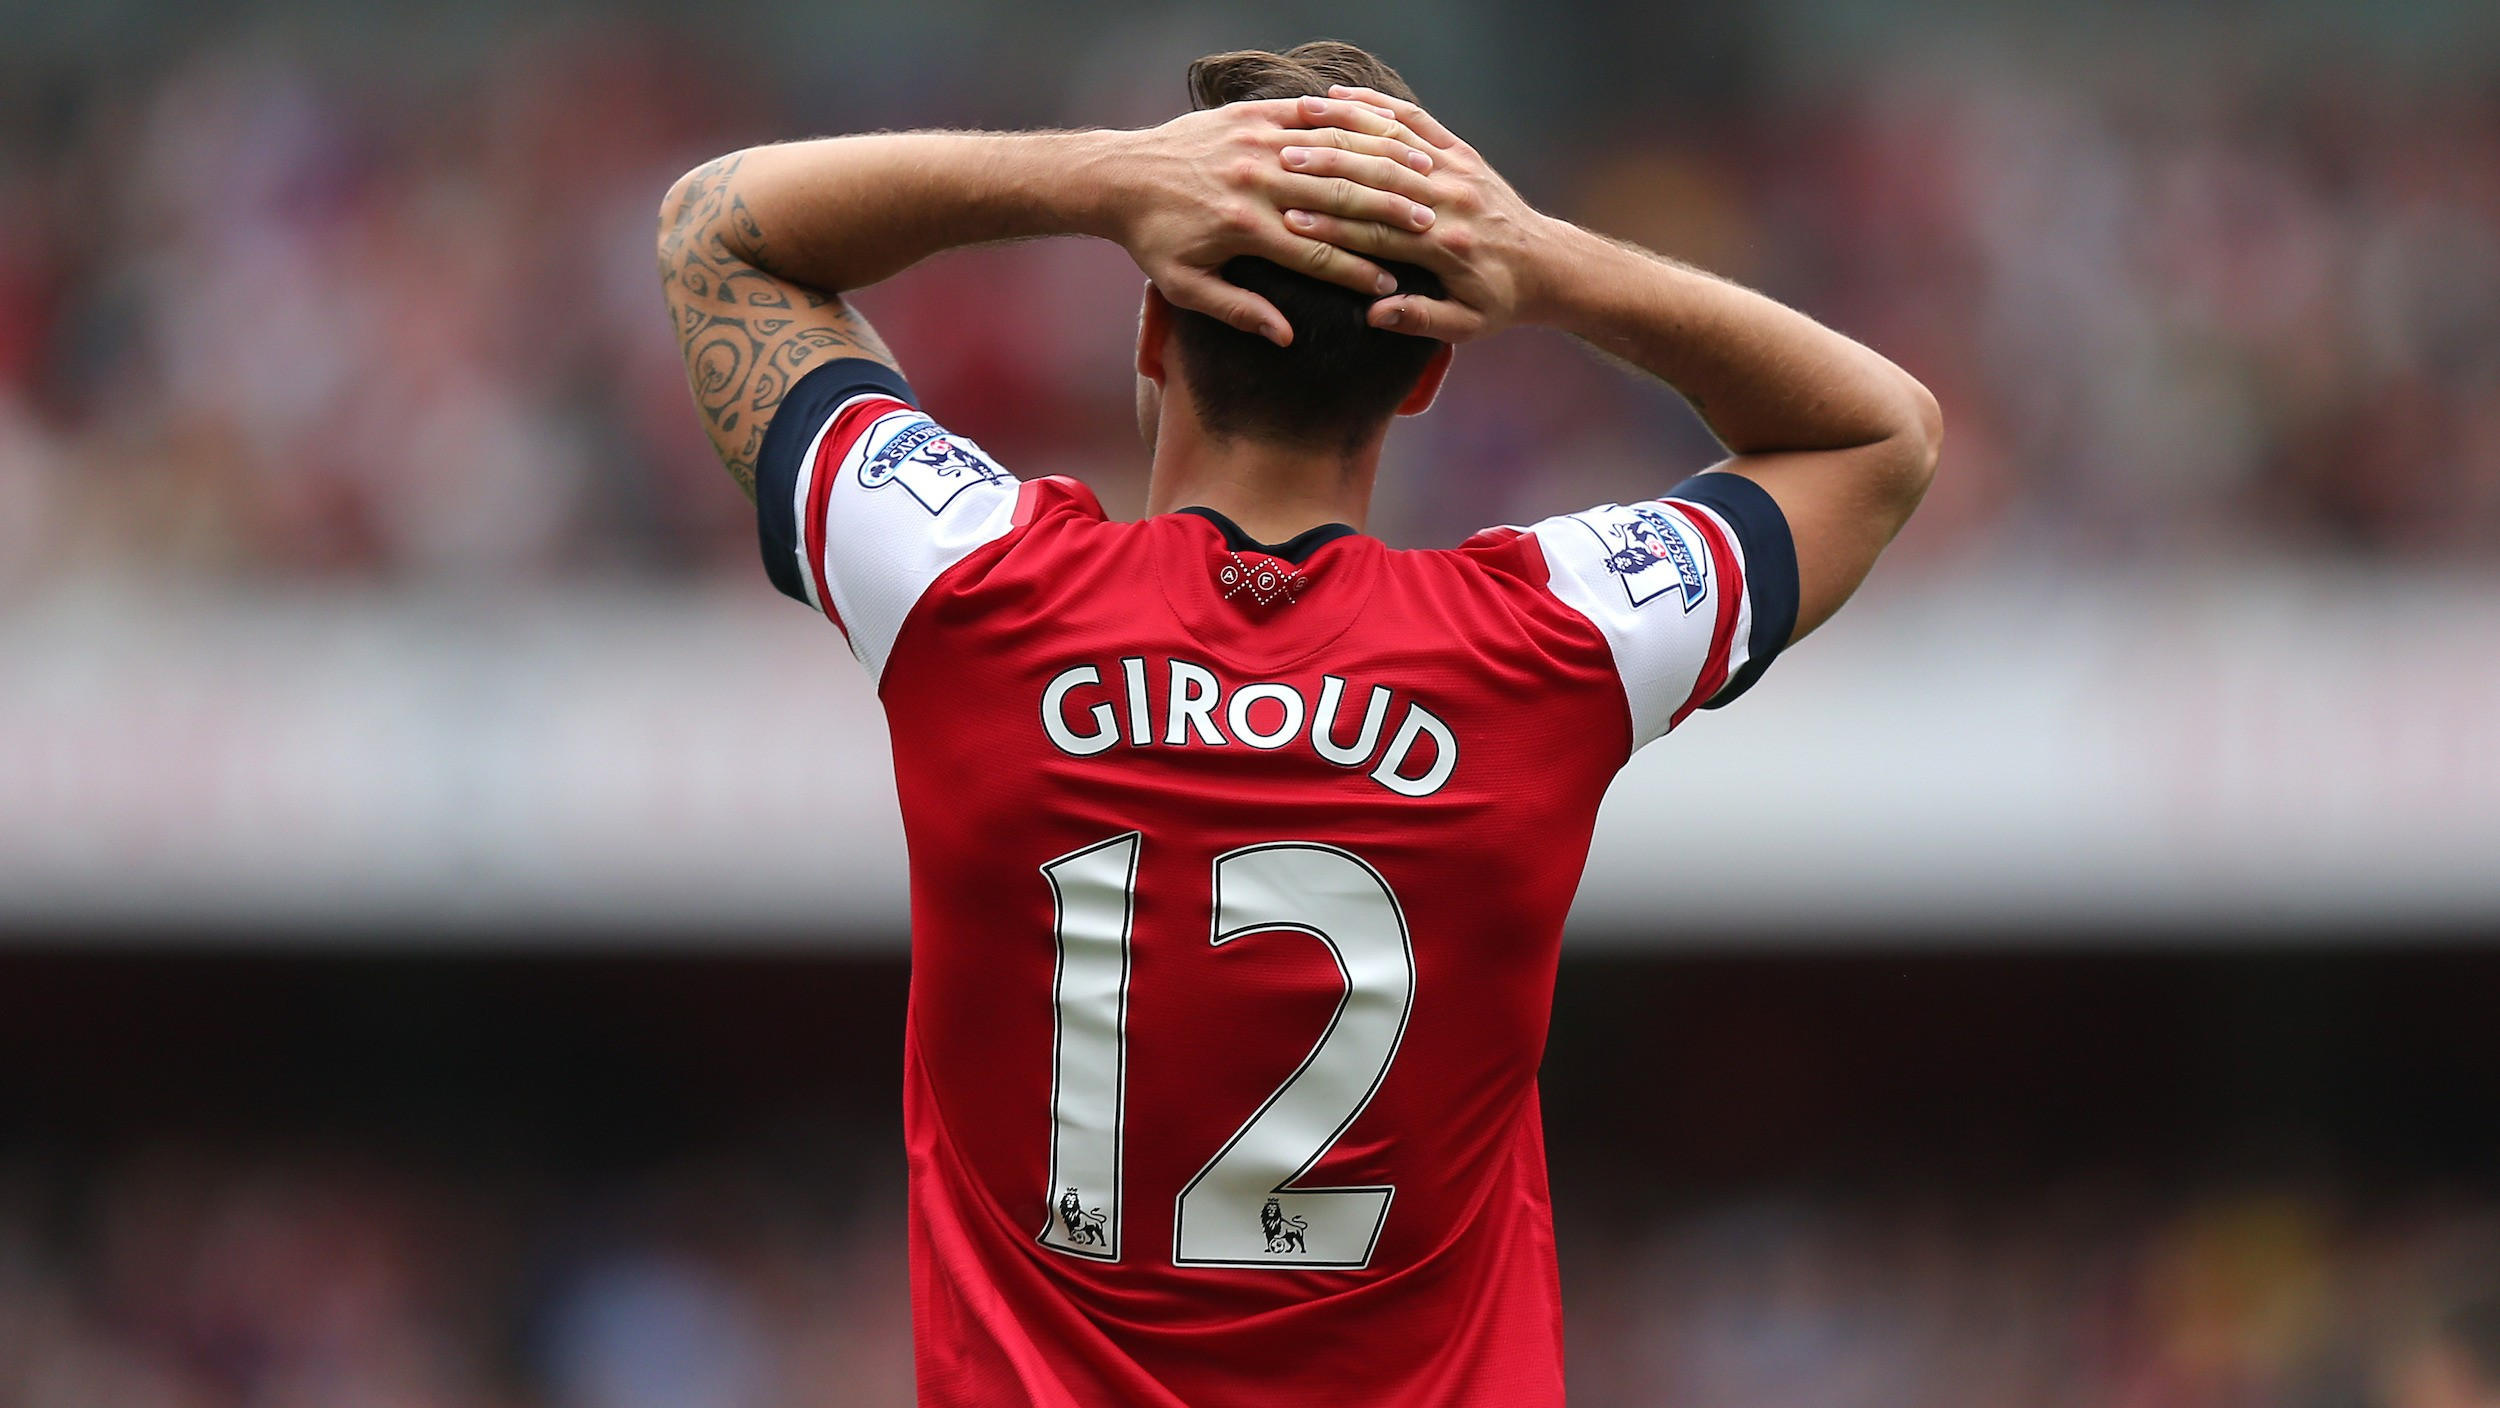 Olivier Giroud: The Beautiful Emblem for an Underachieving Arsenal